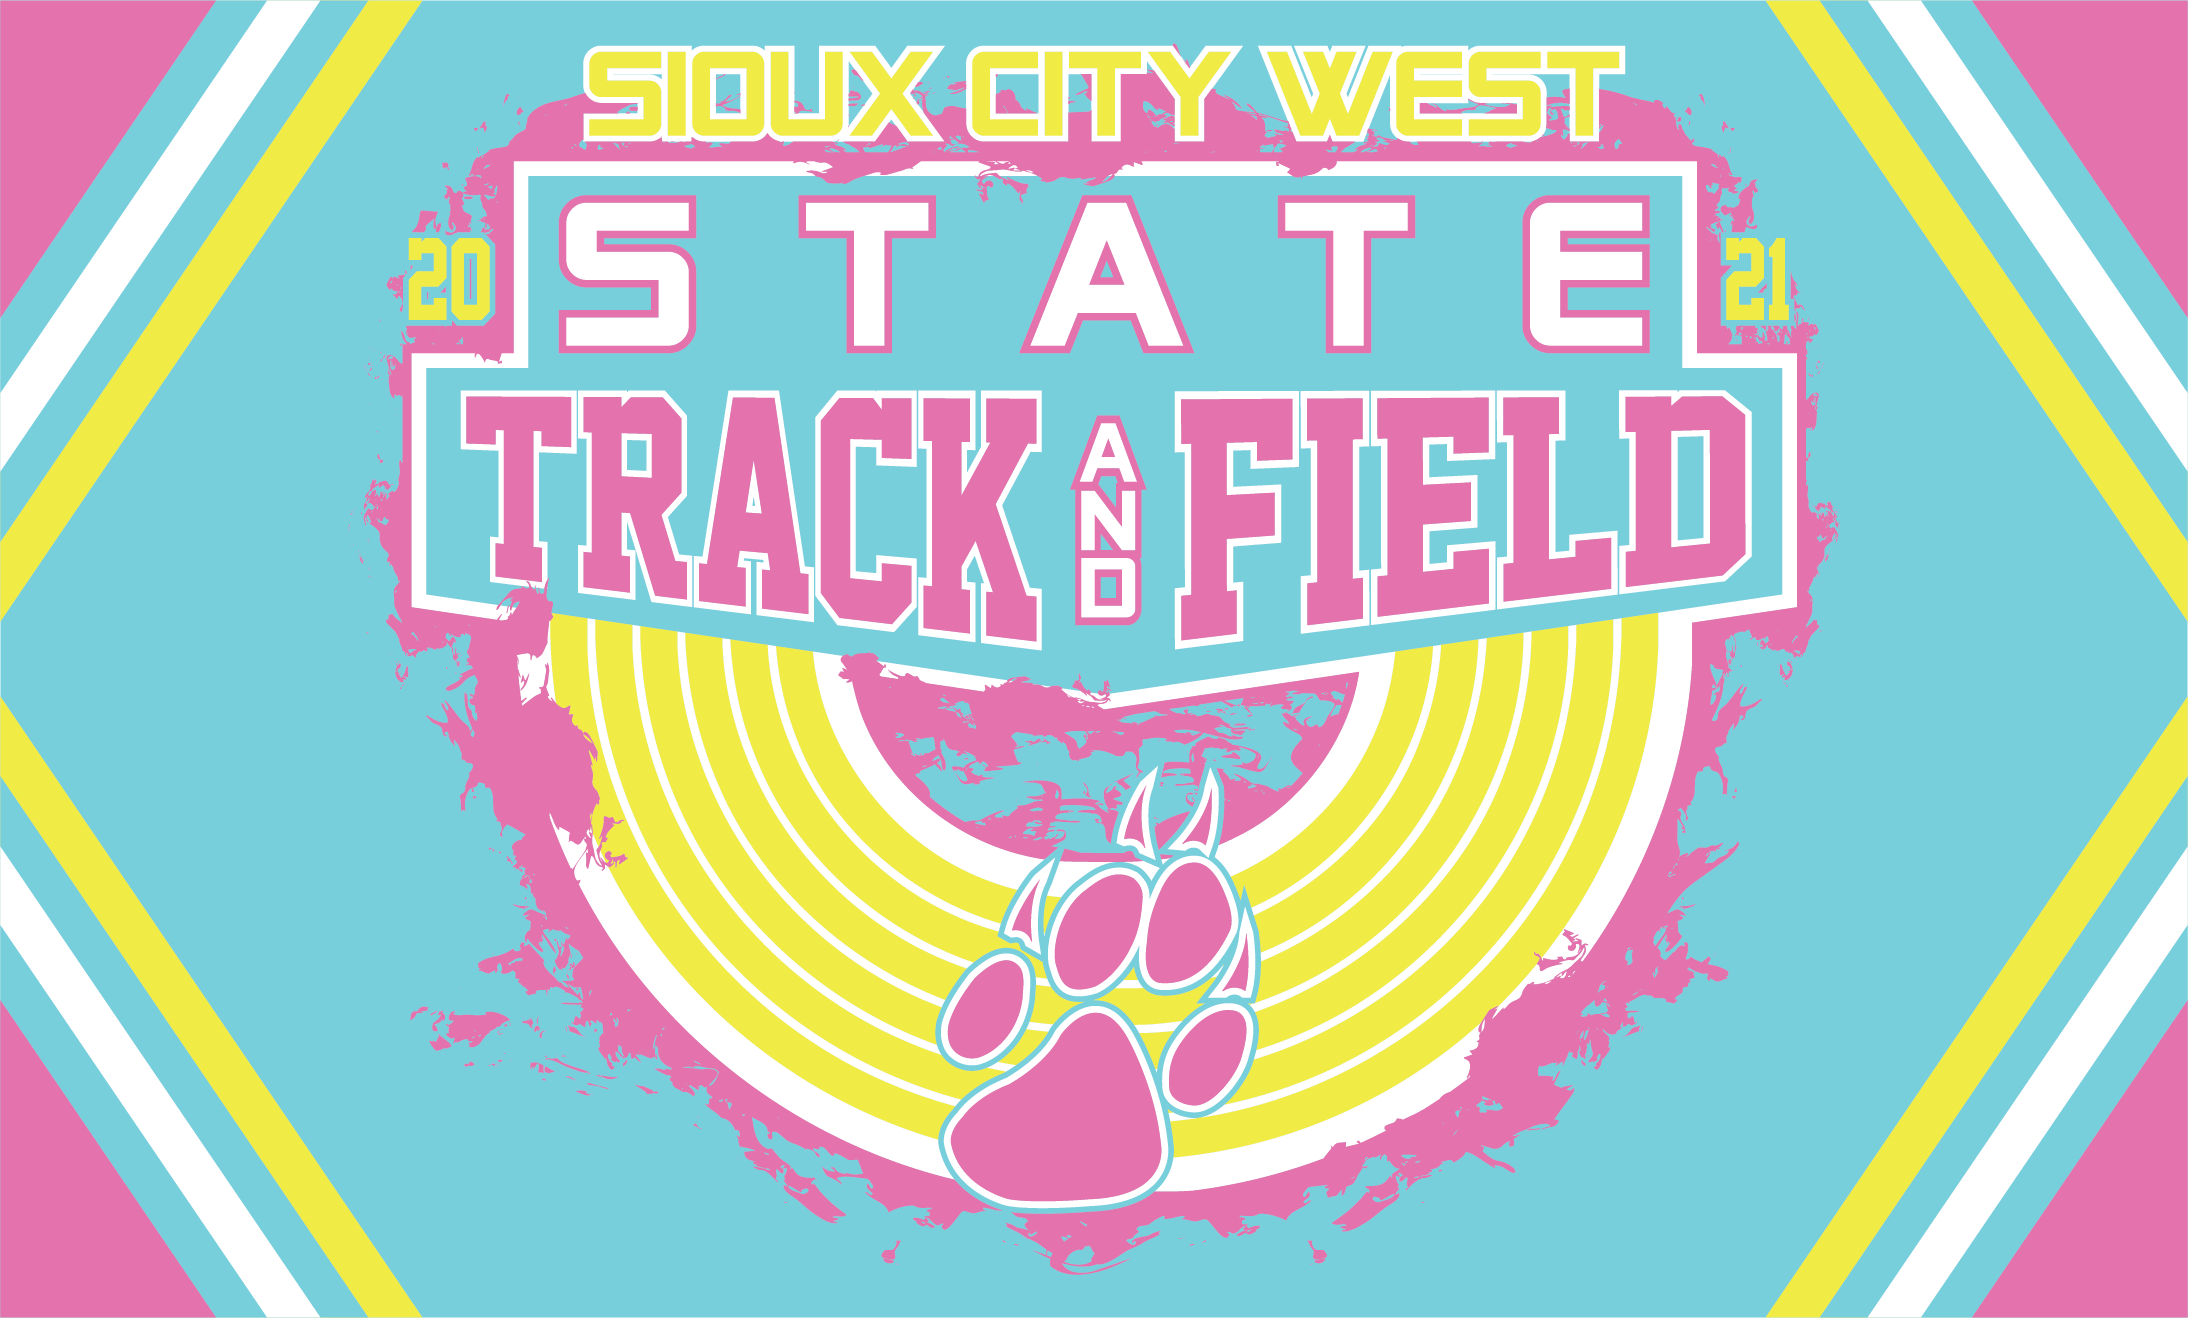 Sioux City West 2021 STATE Track